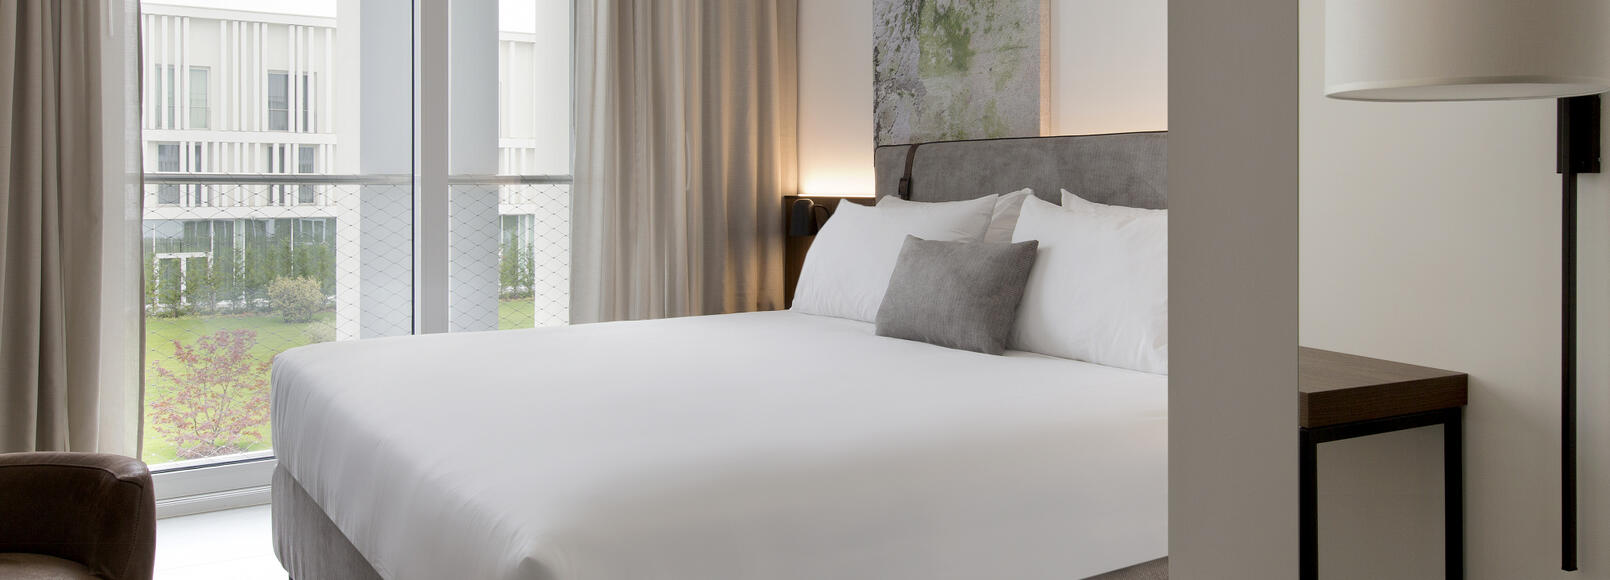 jhotel en offer-juve-parma-in-turino-hotel-with-match-tickets 001